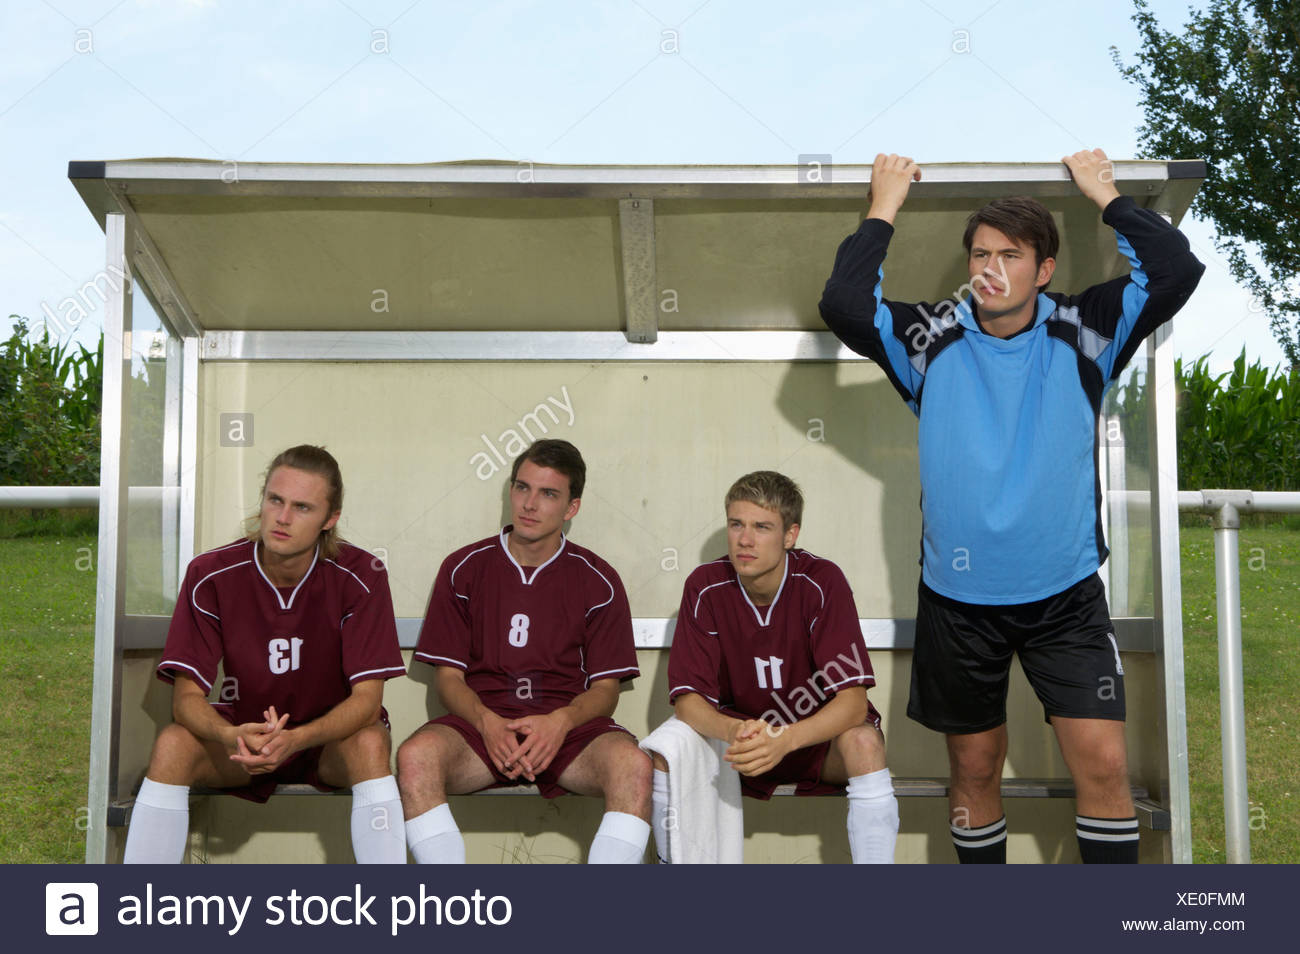 Strained kickers sitting on substitutes' bench - Stock Image